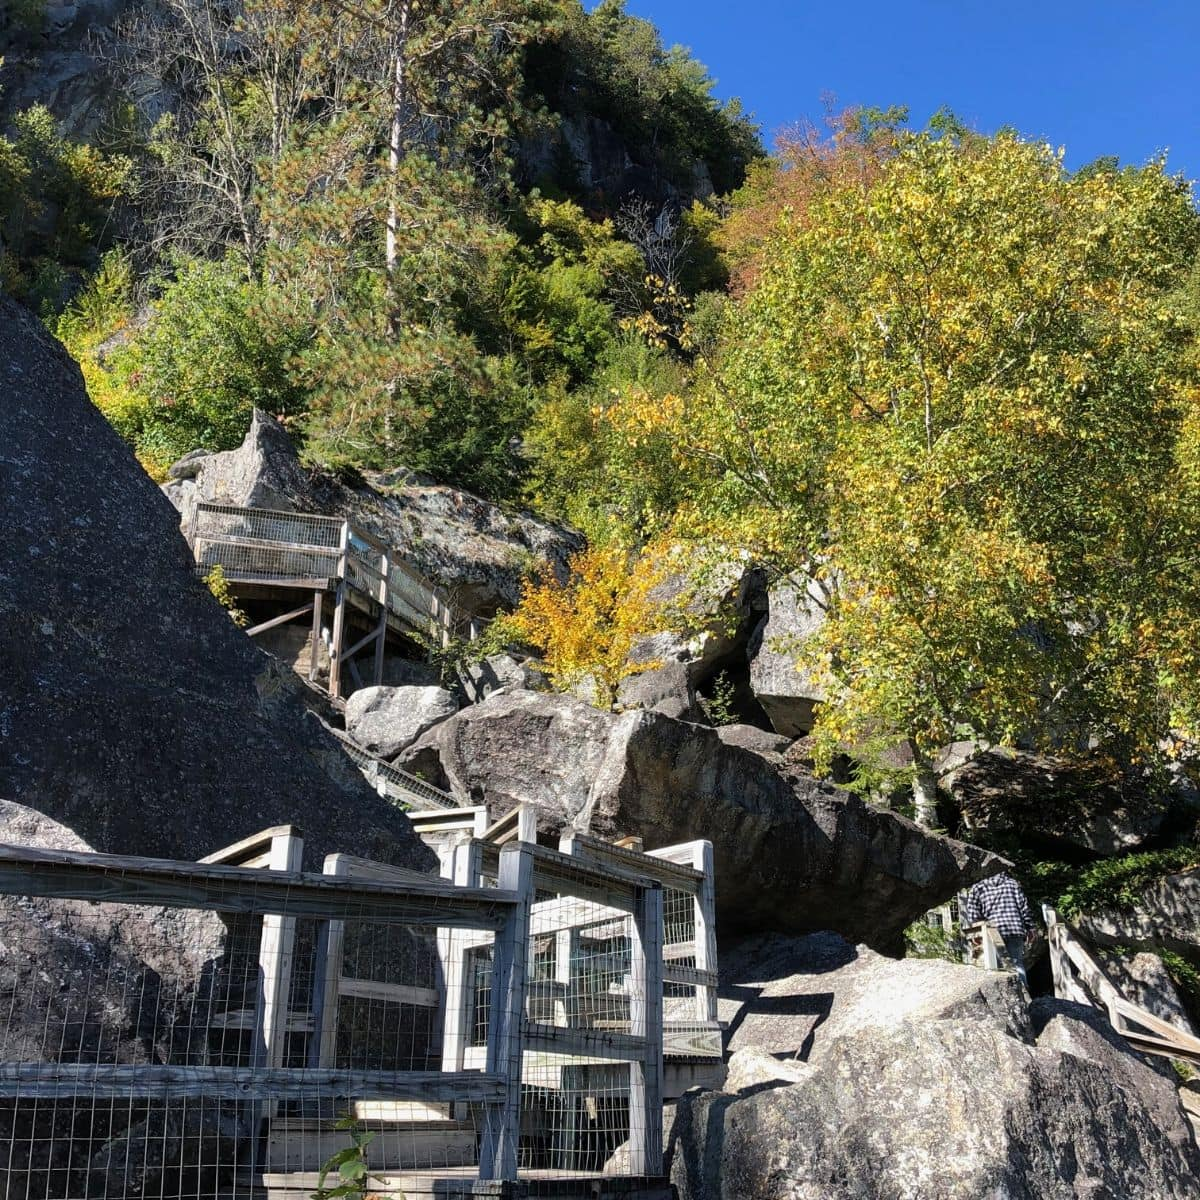 stairs going up to caves in a mountain